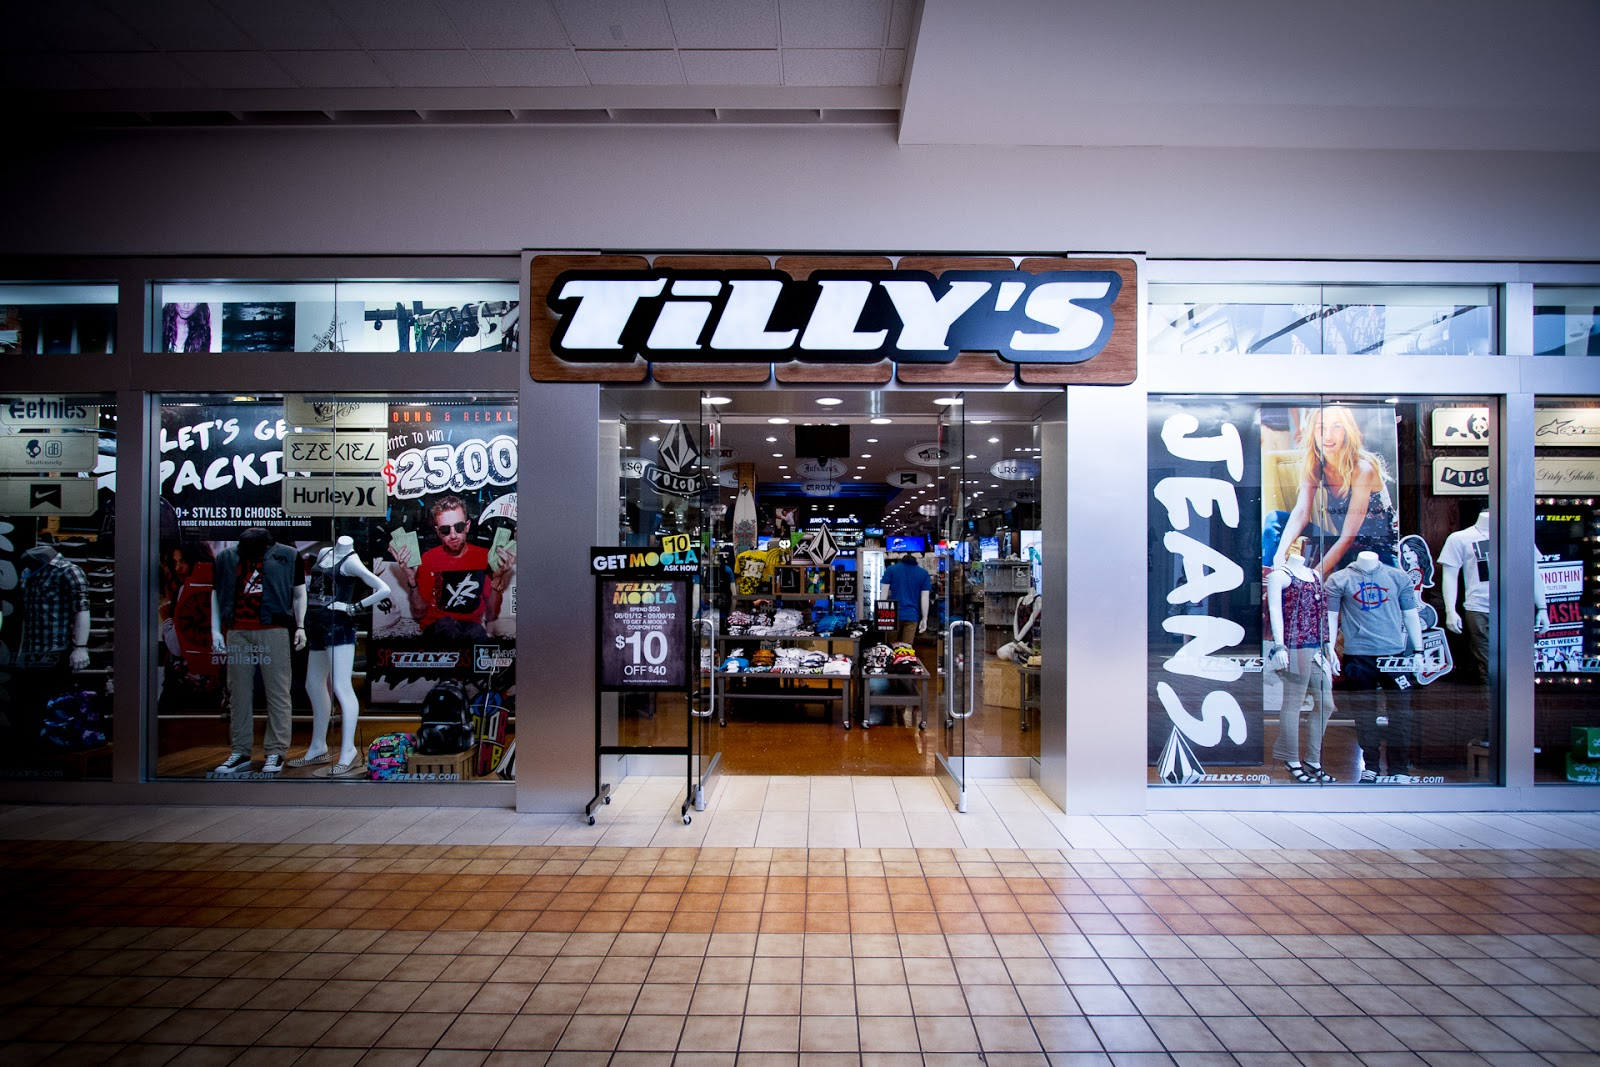 Tilly's Printable Coupons | Printable Coupons